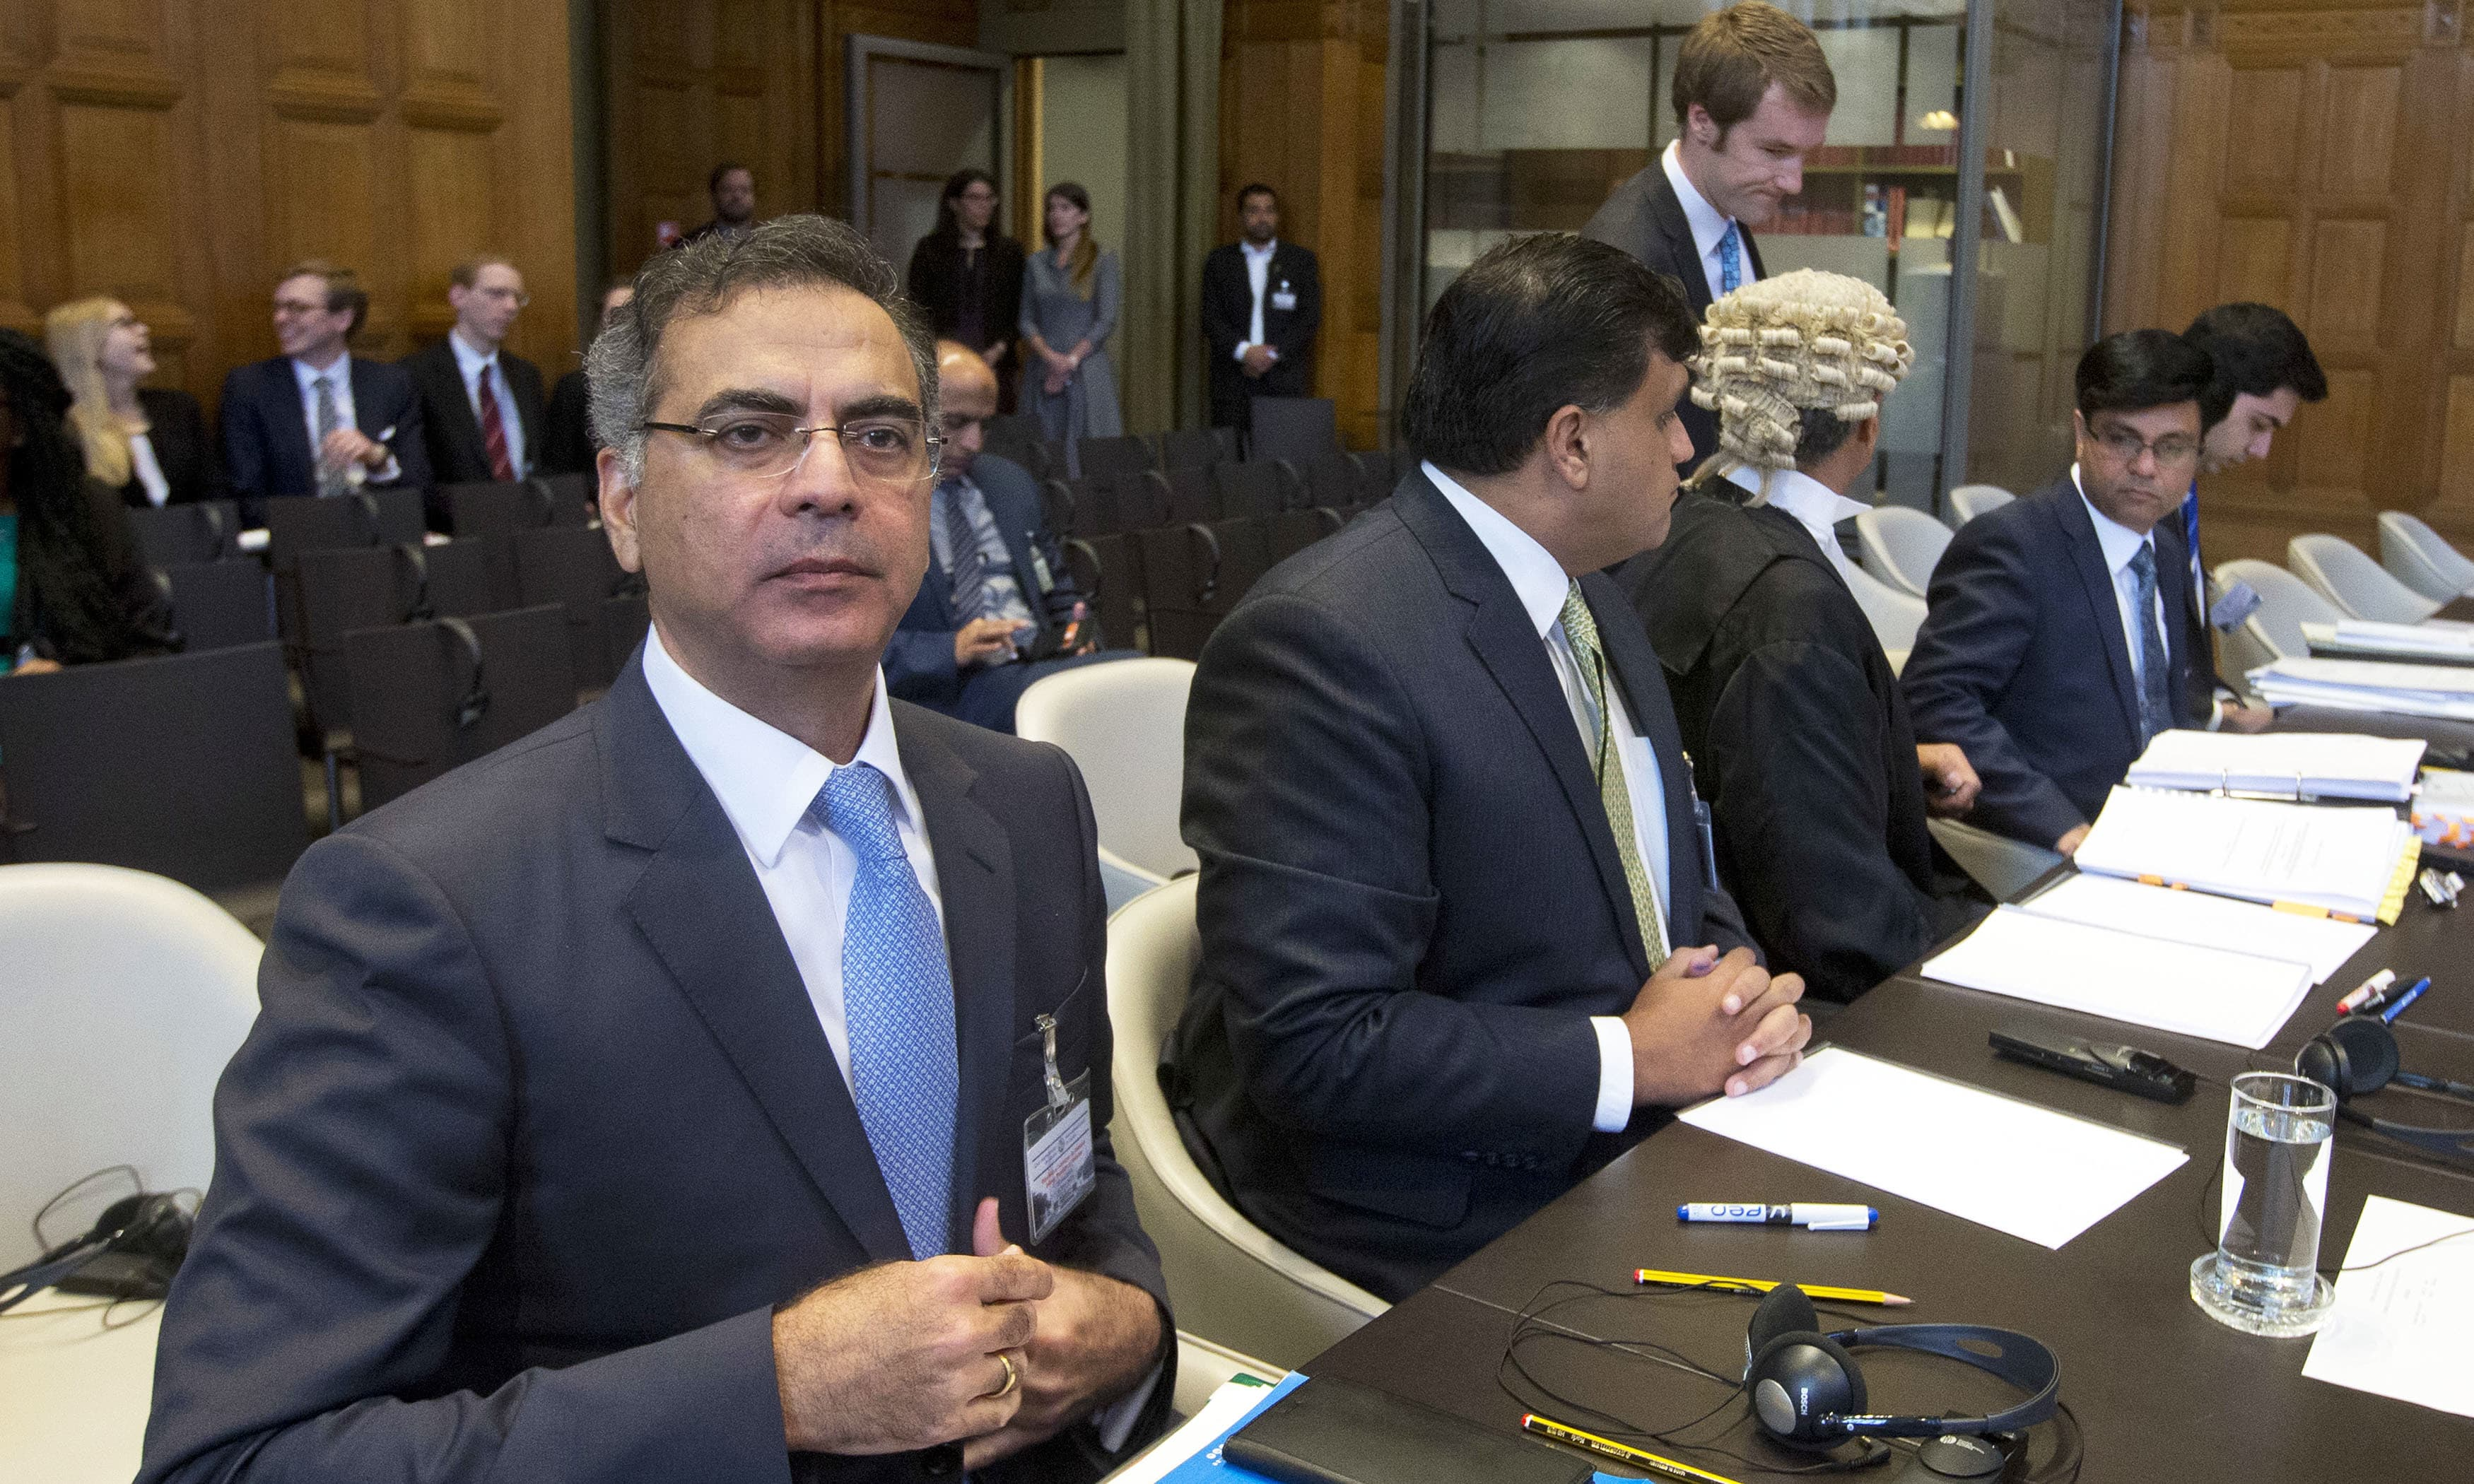 Moazzam Ahmad Khan, head of Pakistan's delegation, and members wait for judges to enter the World Court in The Hague, Netherlands. —AP